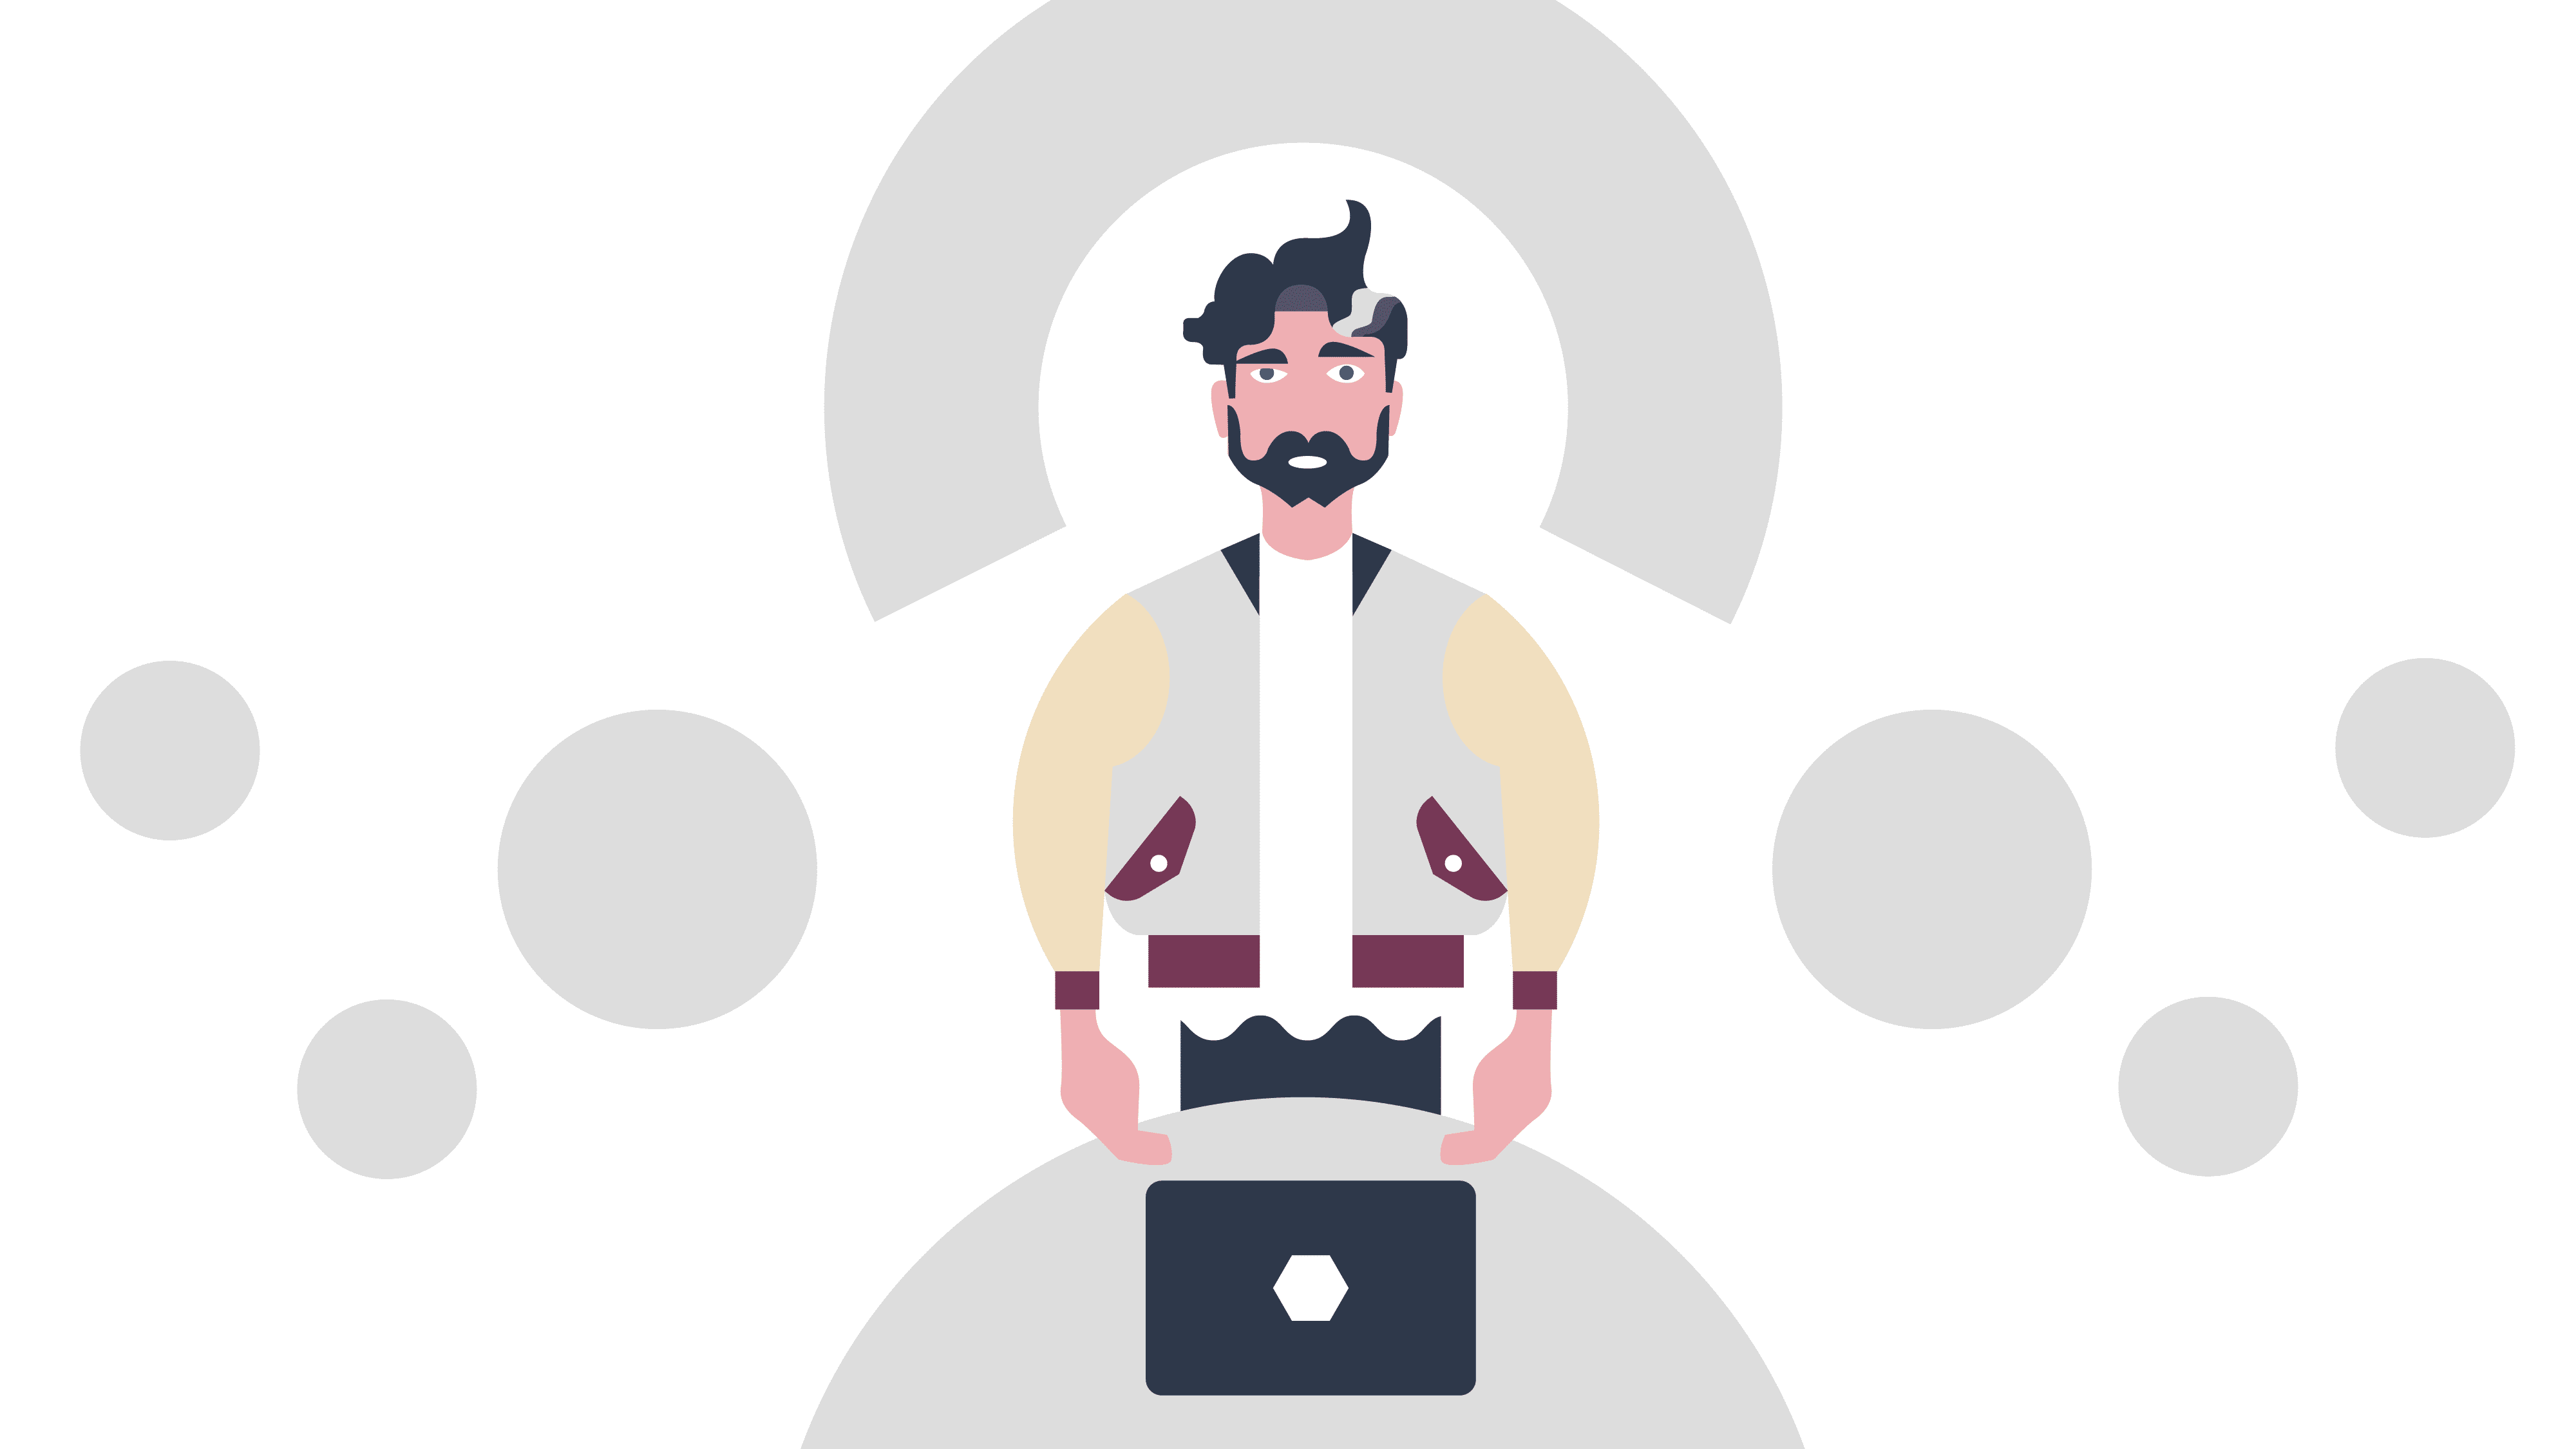 A Shaped Themed Concept - Explainer Video